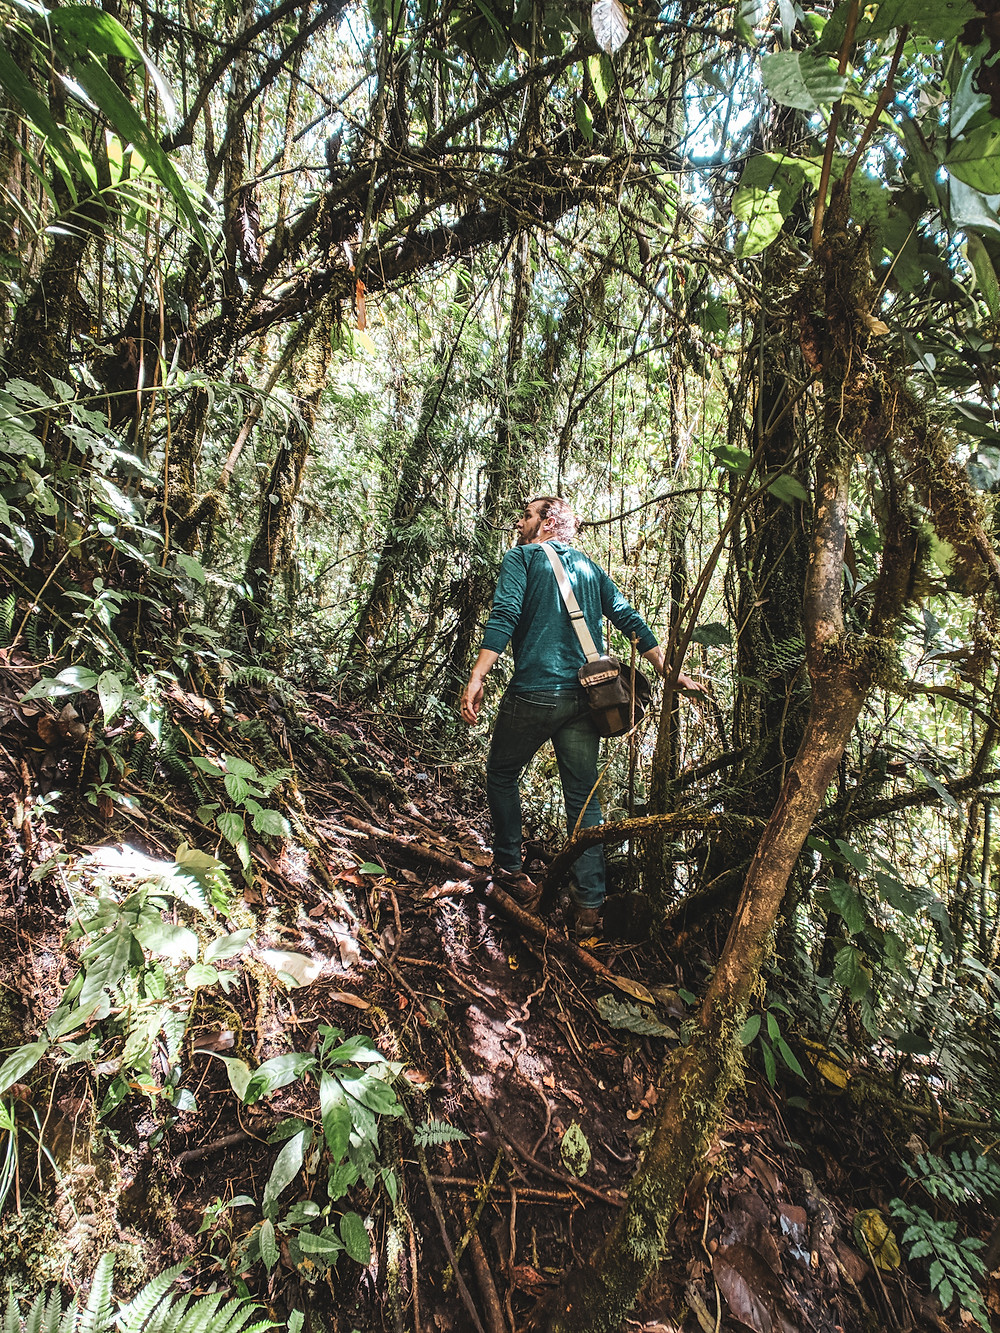 Hiking in the jungle of Jardin, Colombia.